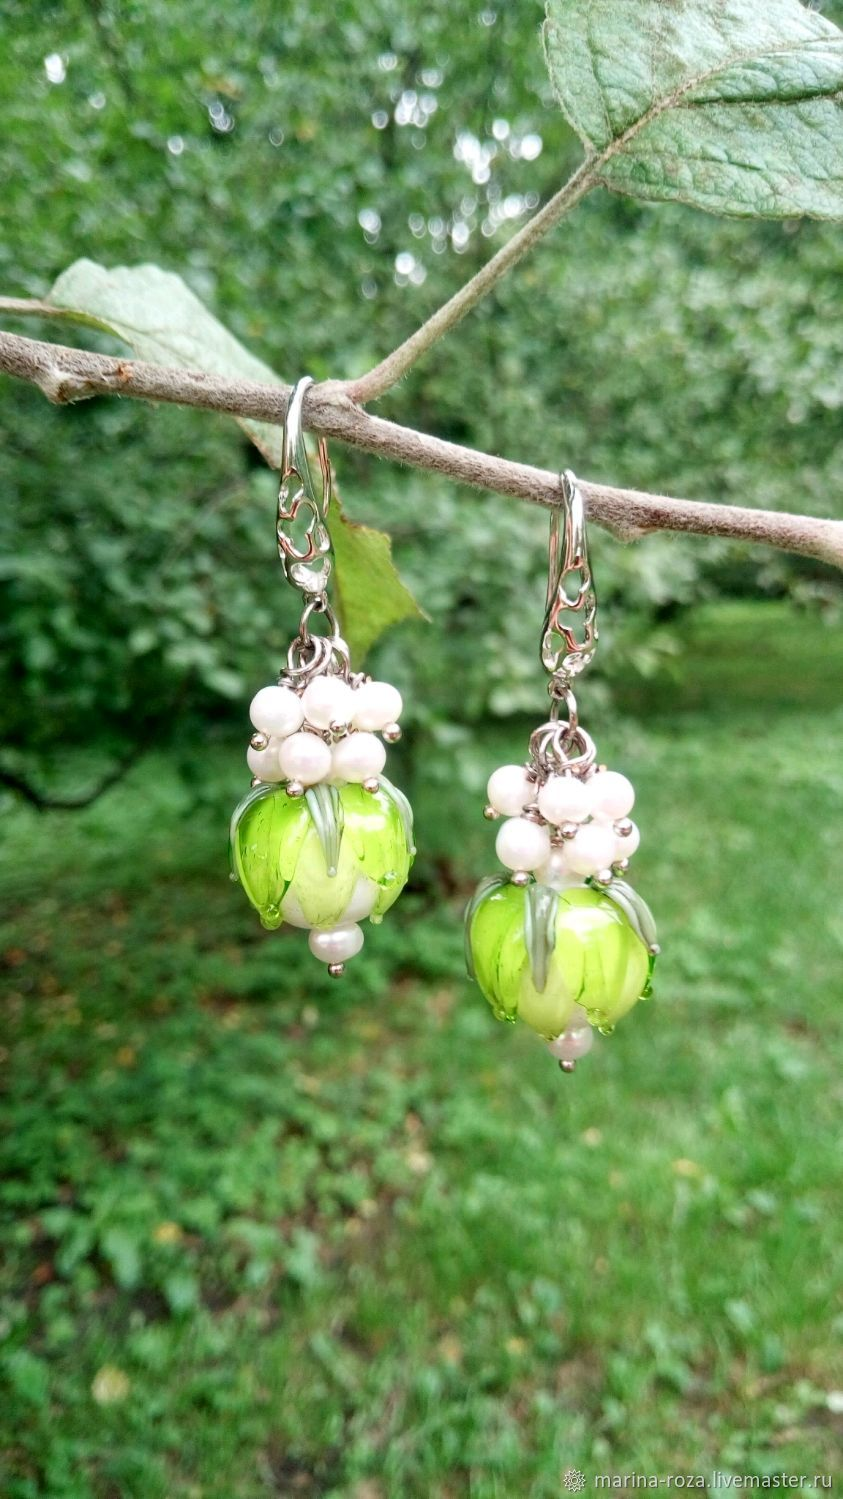 Earrings buds of lampwork beads and pearls, Earrings, Moscow,  Фото №1